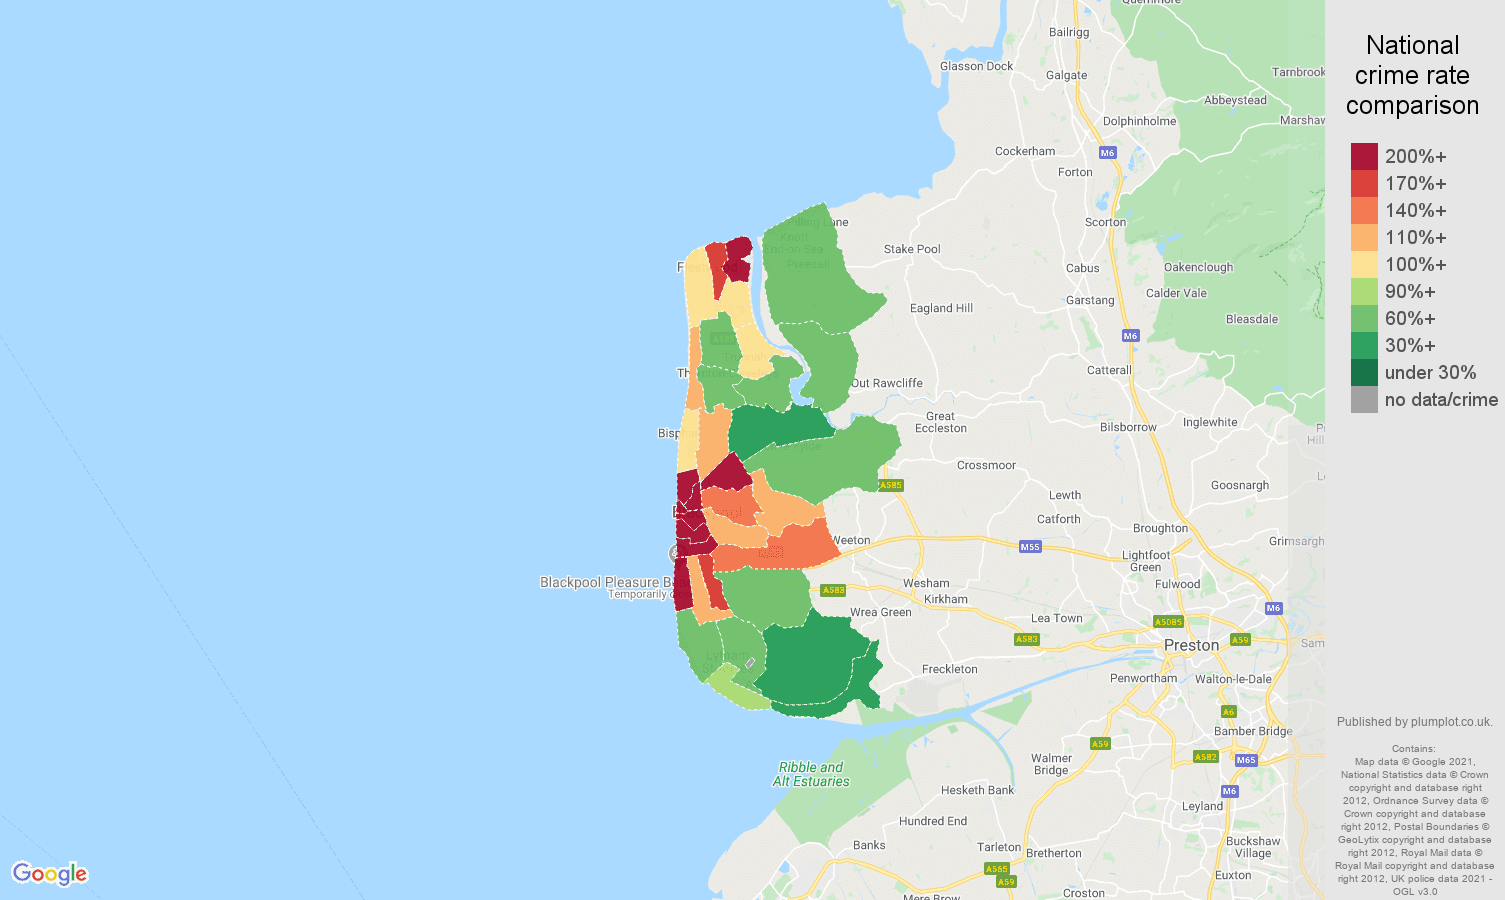 Blackpool violent crime rate comparison map